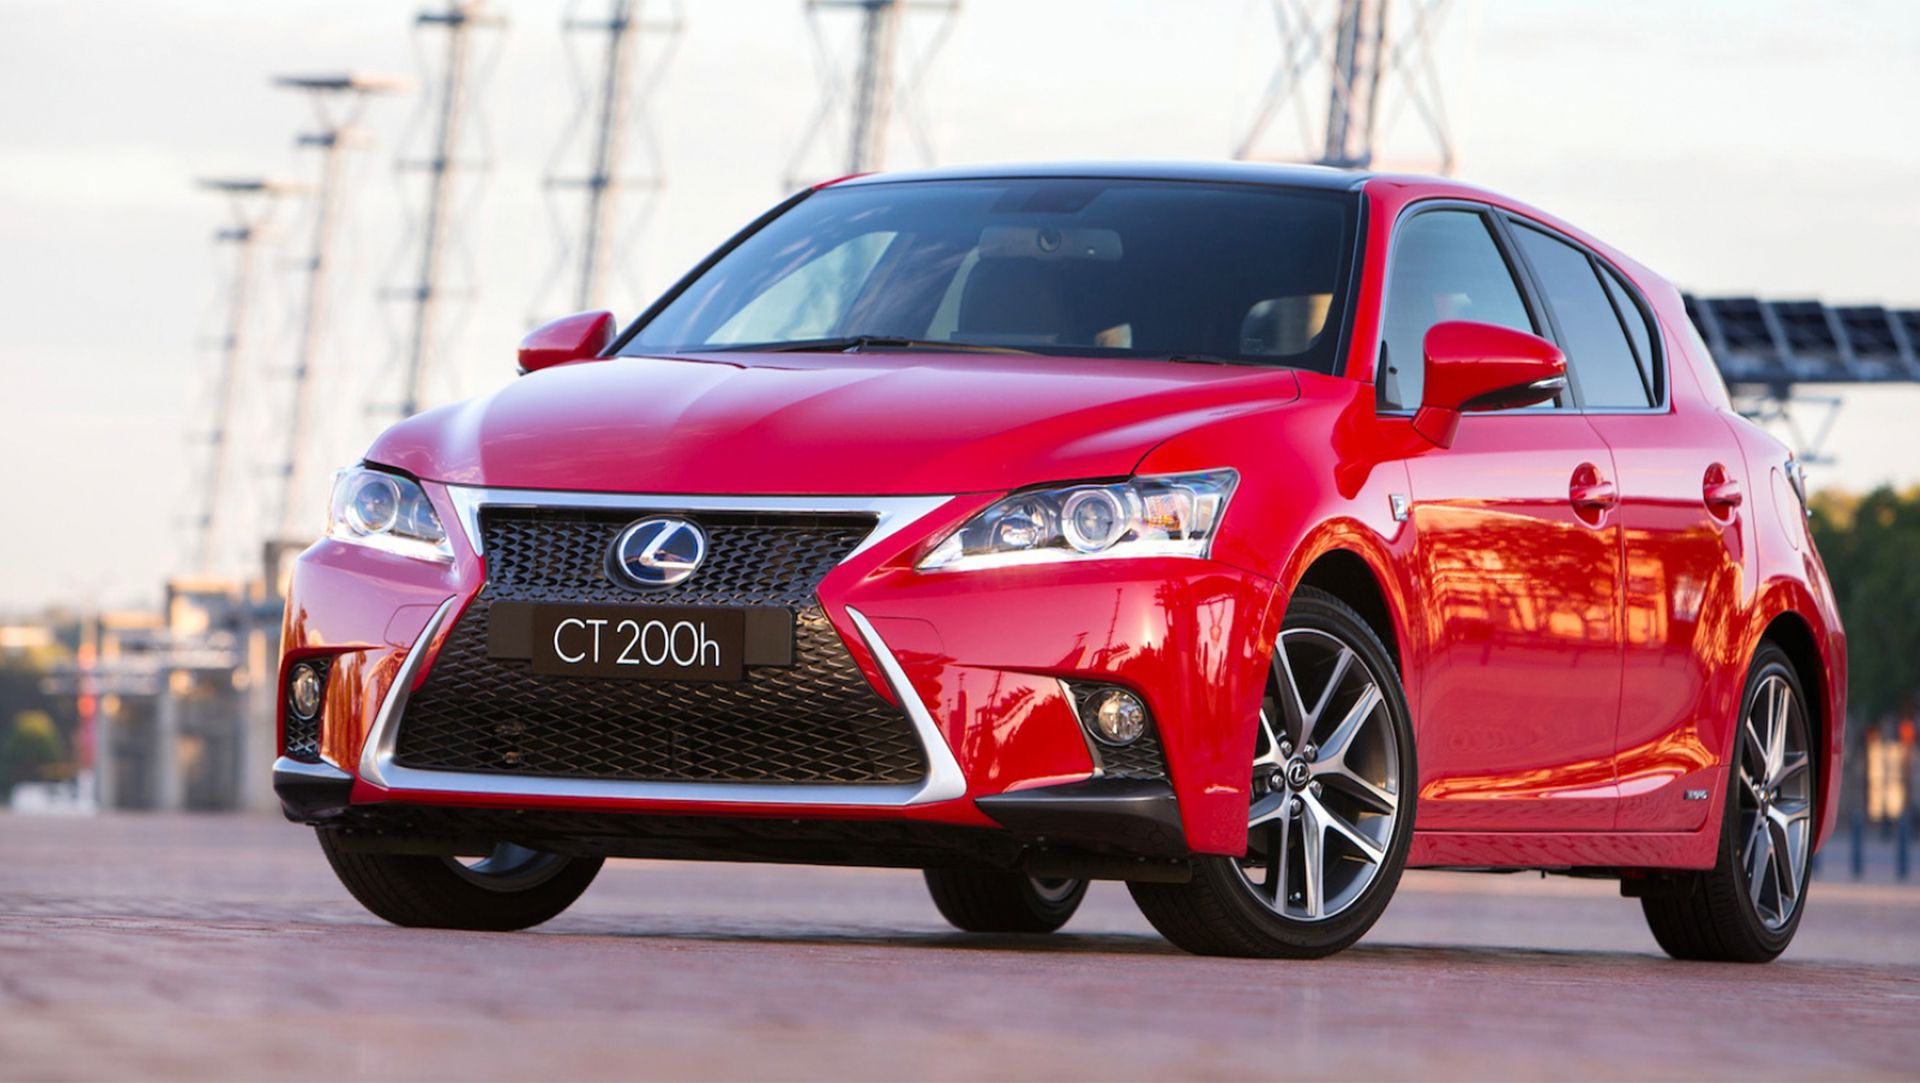 Lexus Ct Second Gen Small Car Could Gain Non Hcybrid Turbo Engines